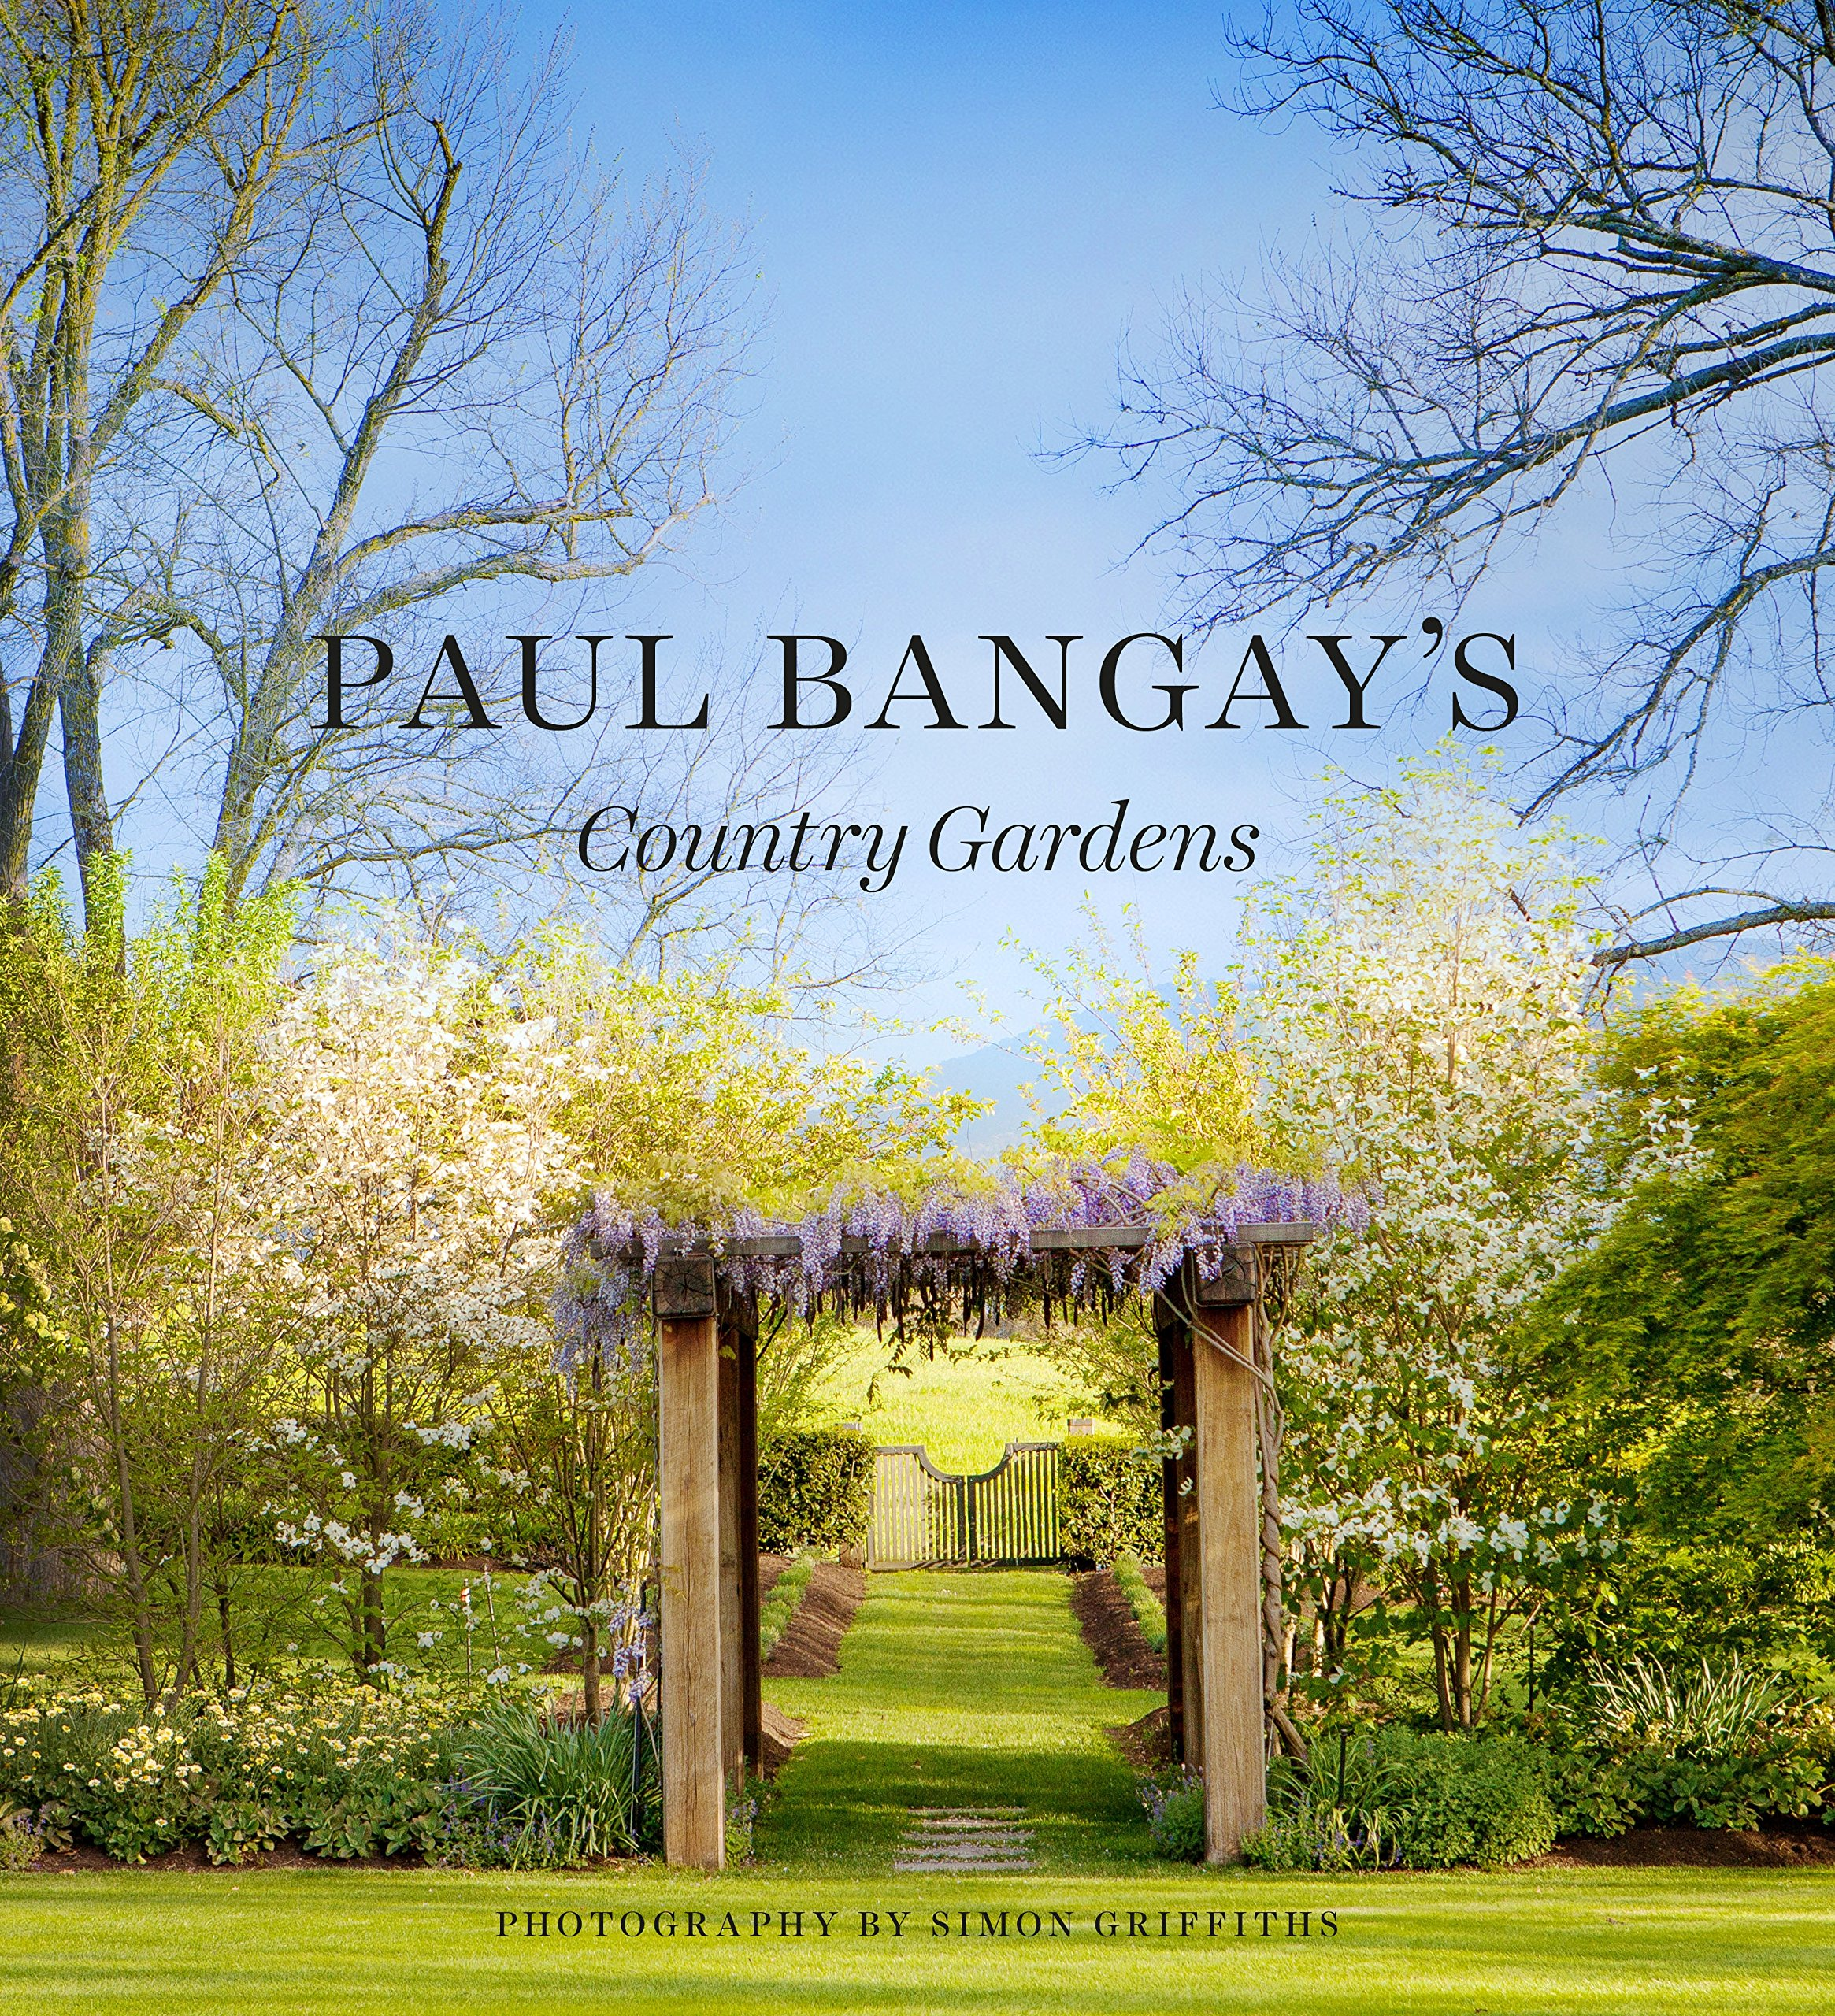 amazon.com: paul bangayu0027s country gardens (9781921383991): paul bangay: